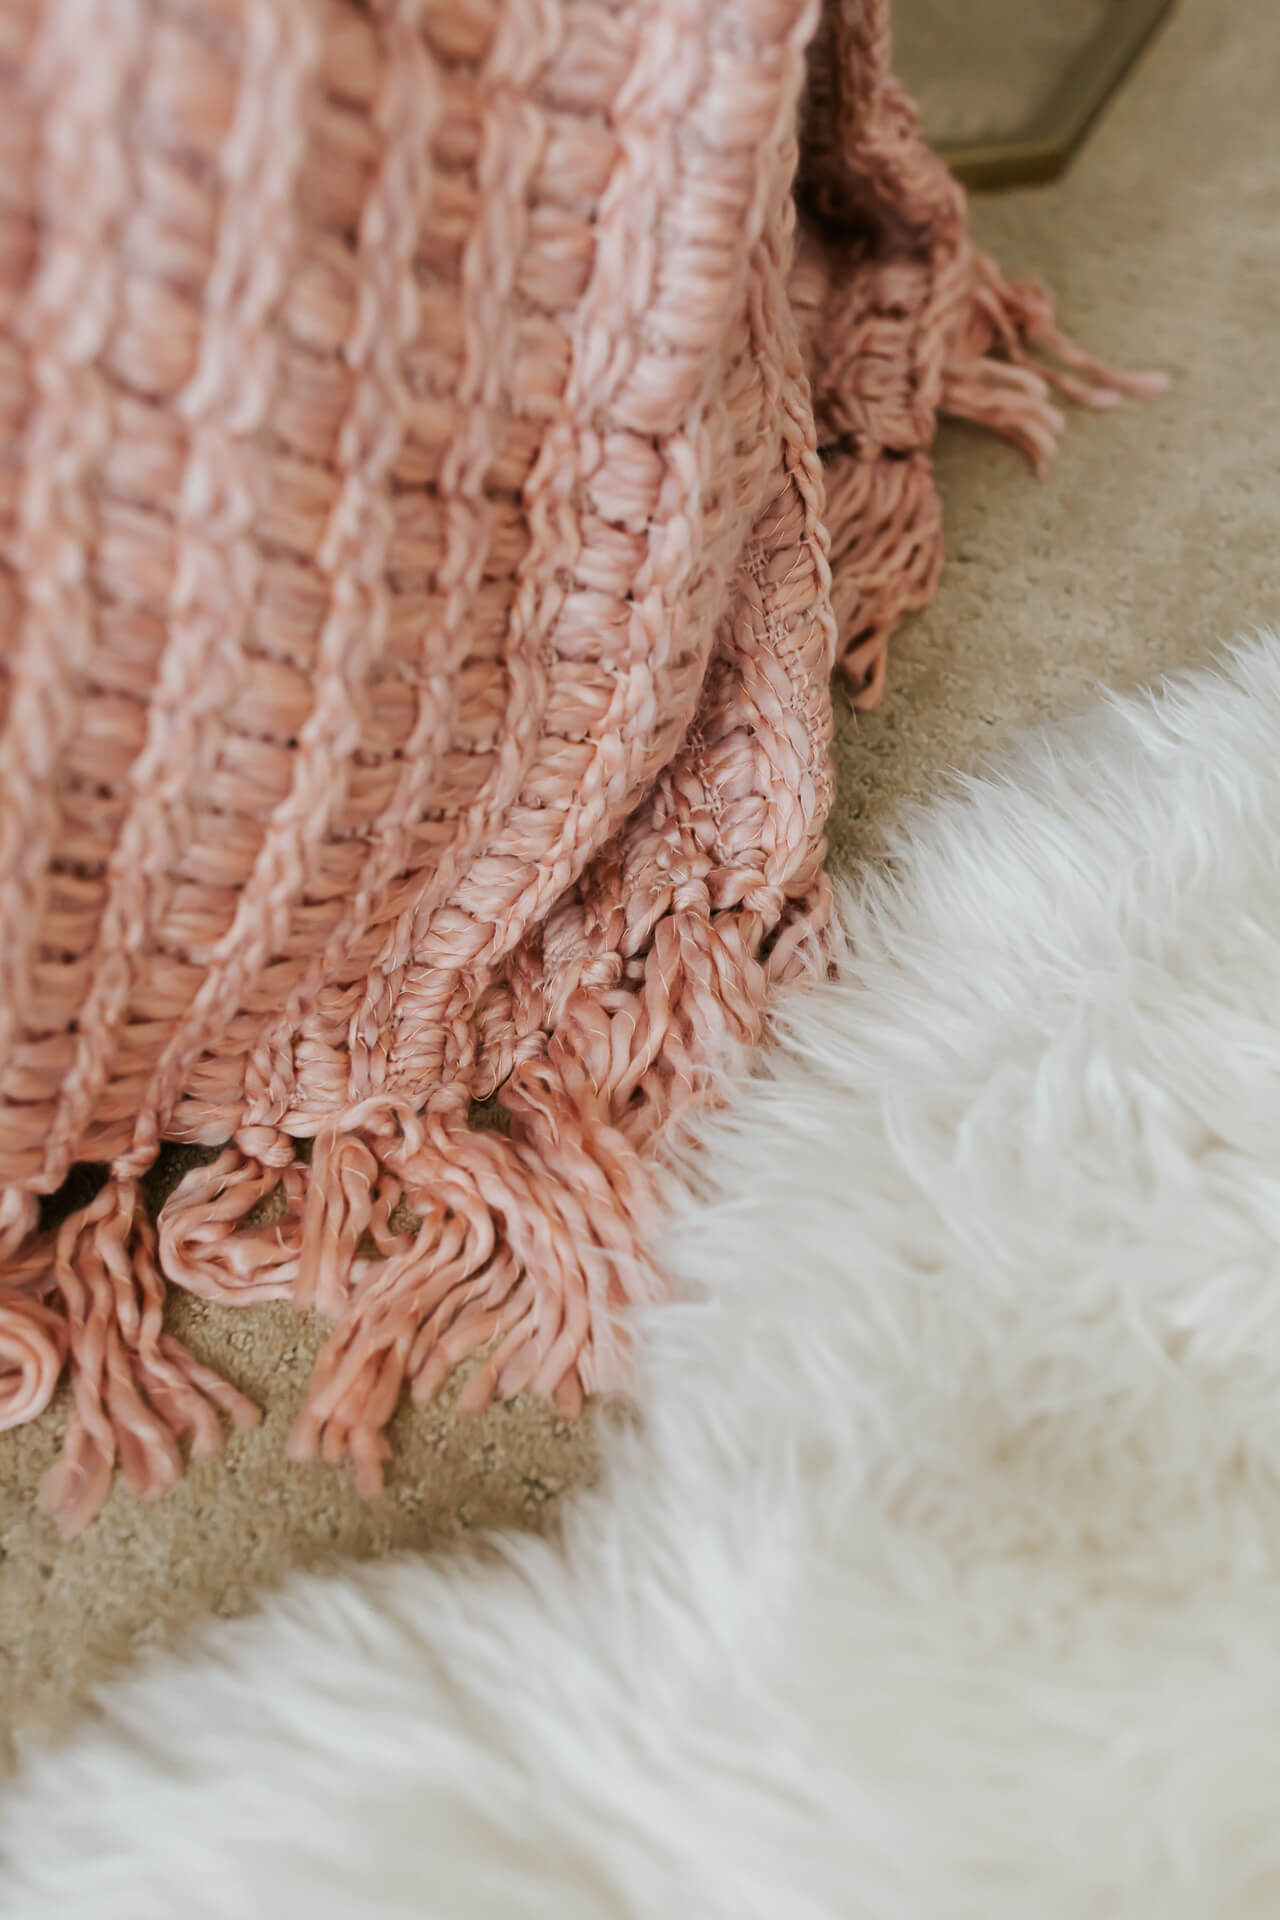 Cozy knitted blankets and sheepskins rugs make our bedroom so inviting! | M Loves M @marmar